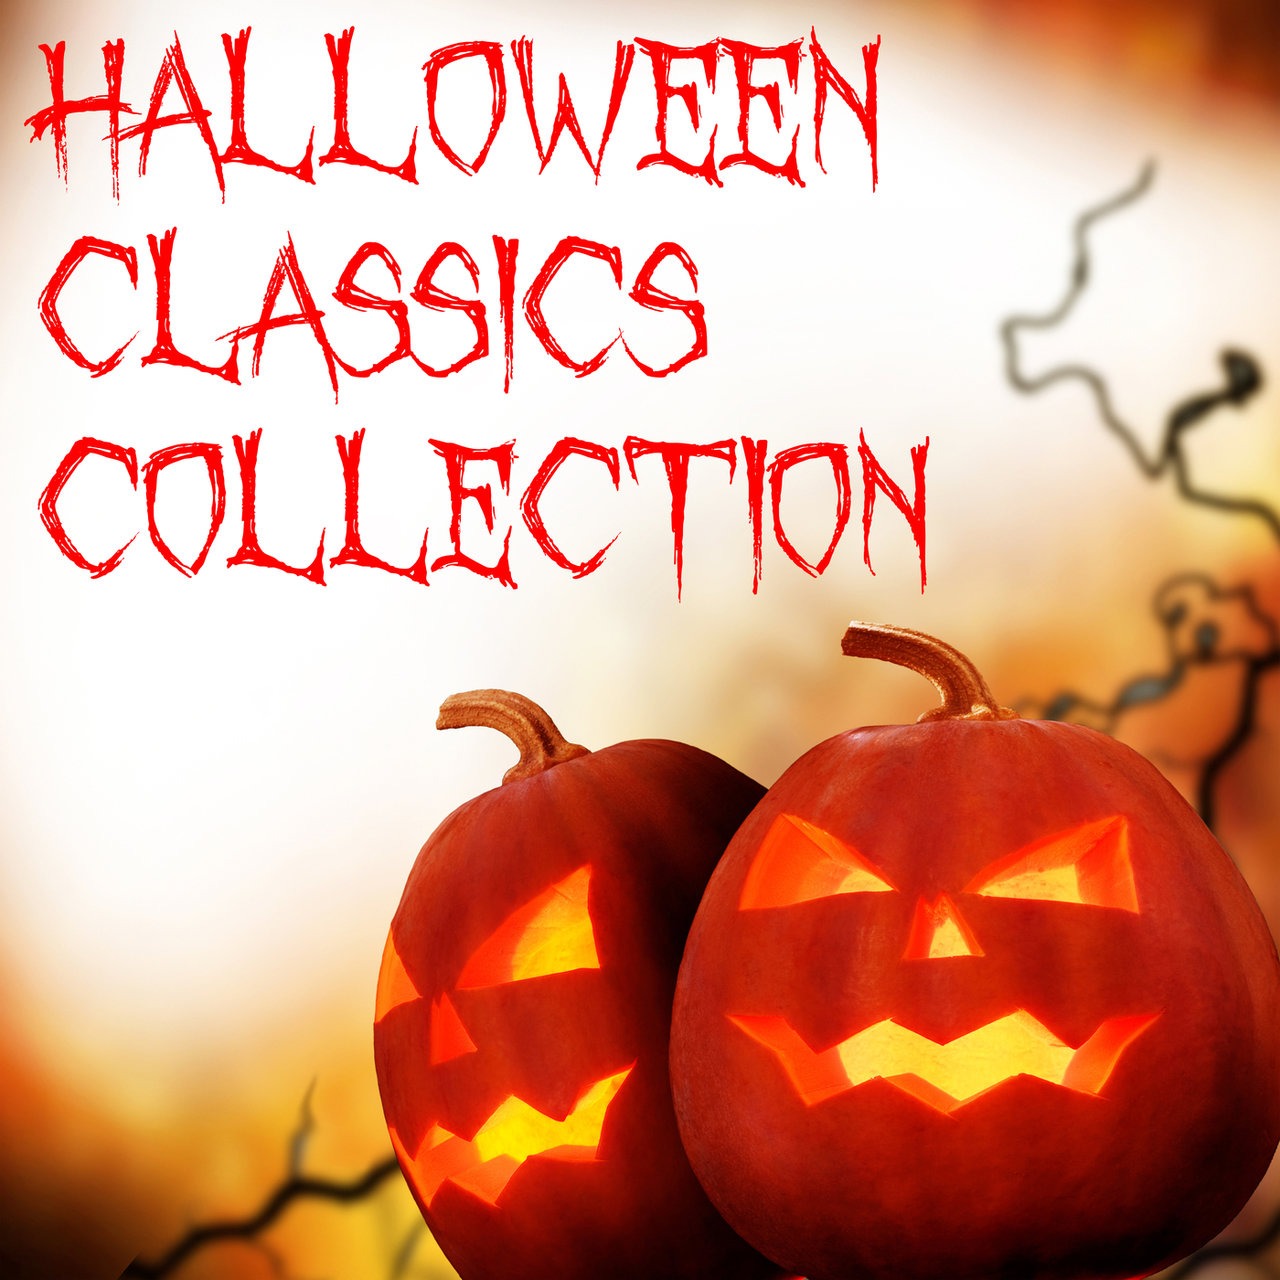 tidal: listen to halloween classics collection - halloween music for